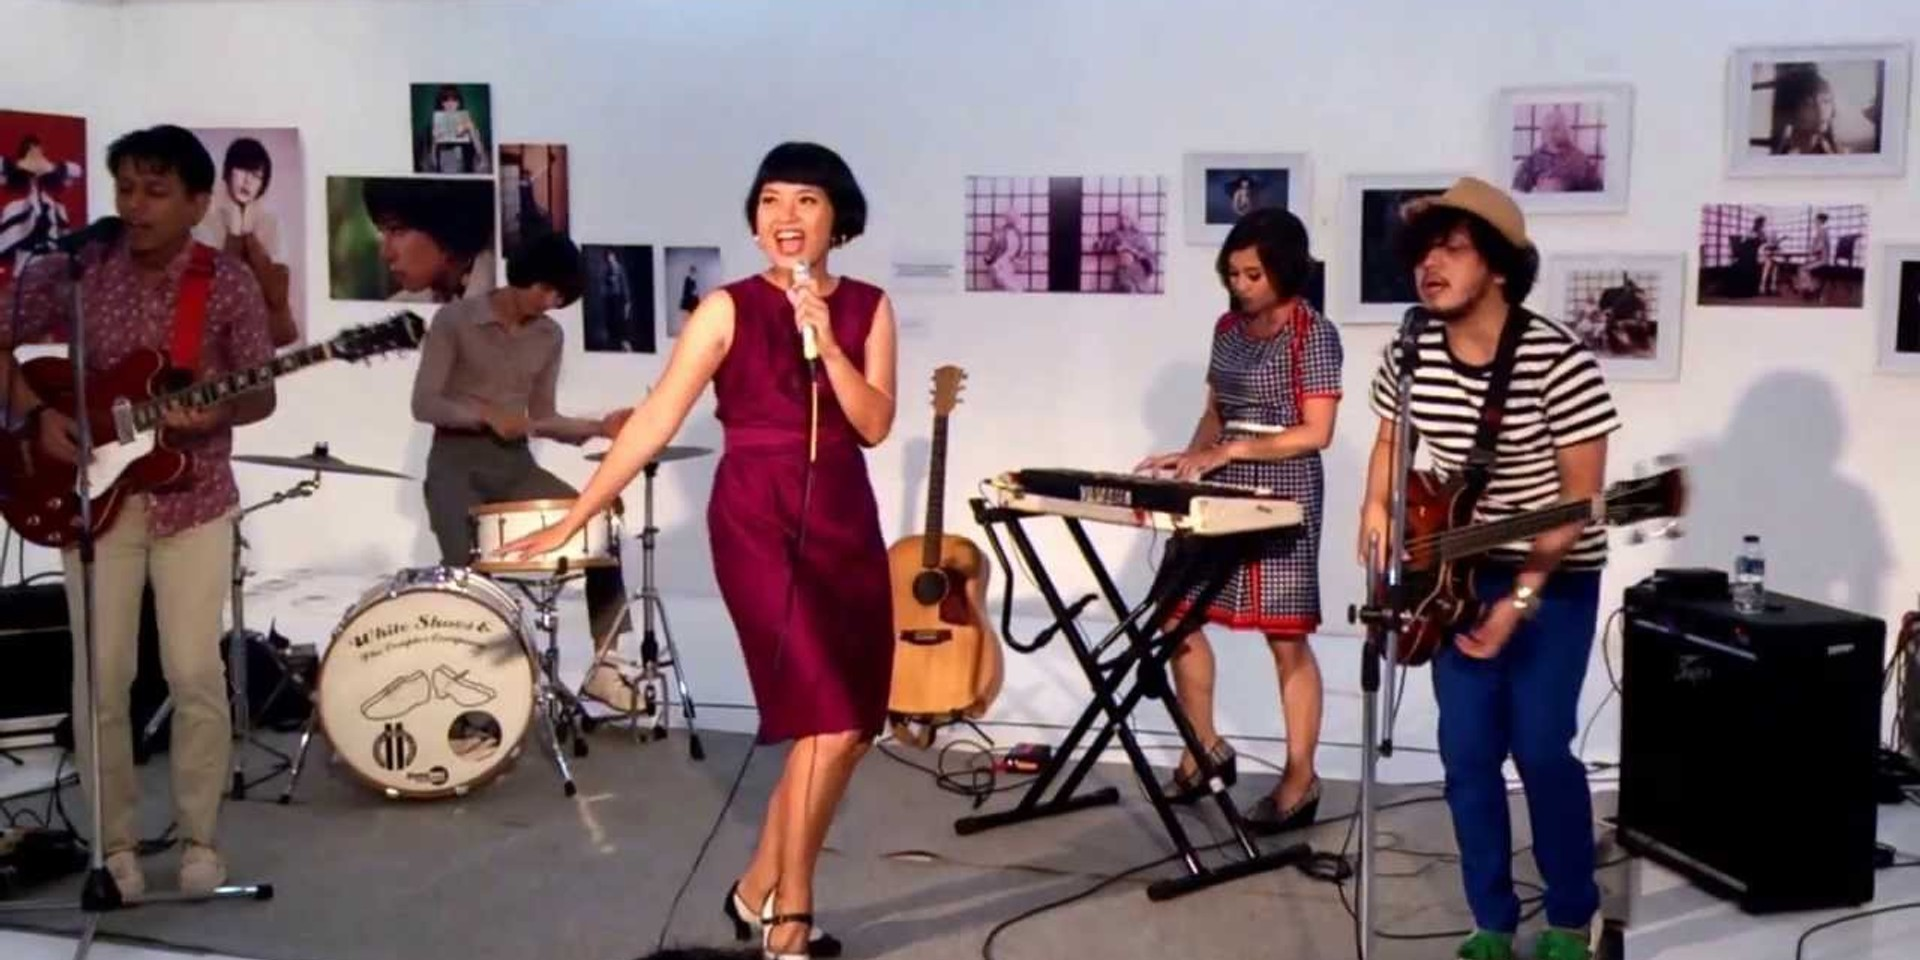 White Shoes & The Couples Company, Jason Ranti,  DangerDope and more to perform at International Museum Day 2017